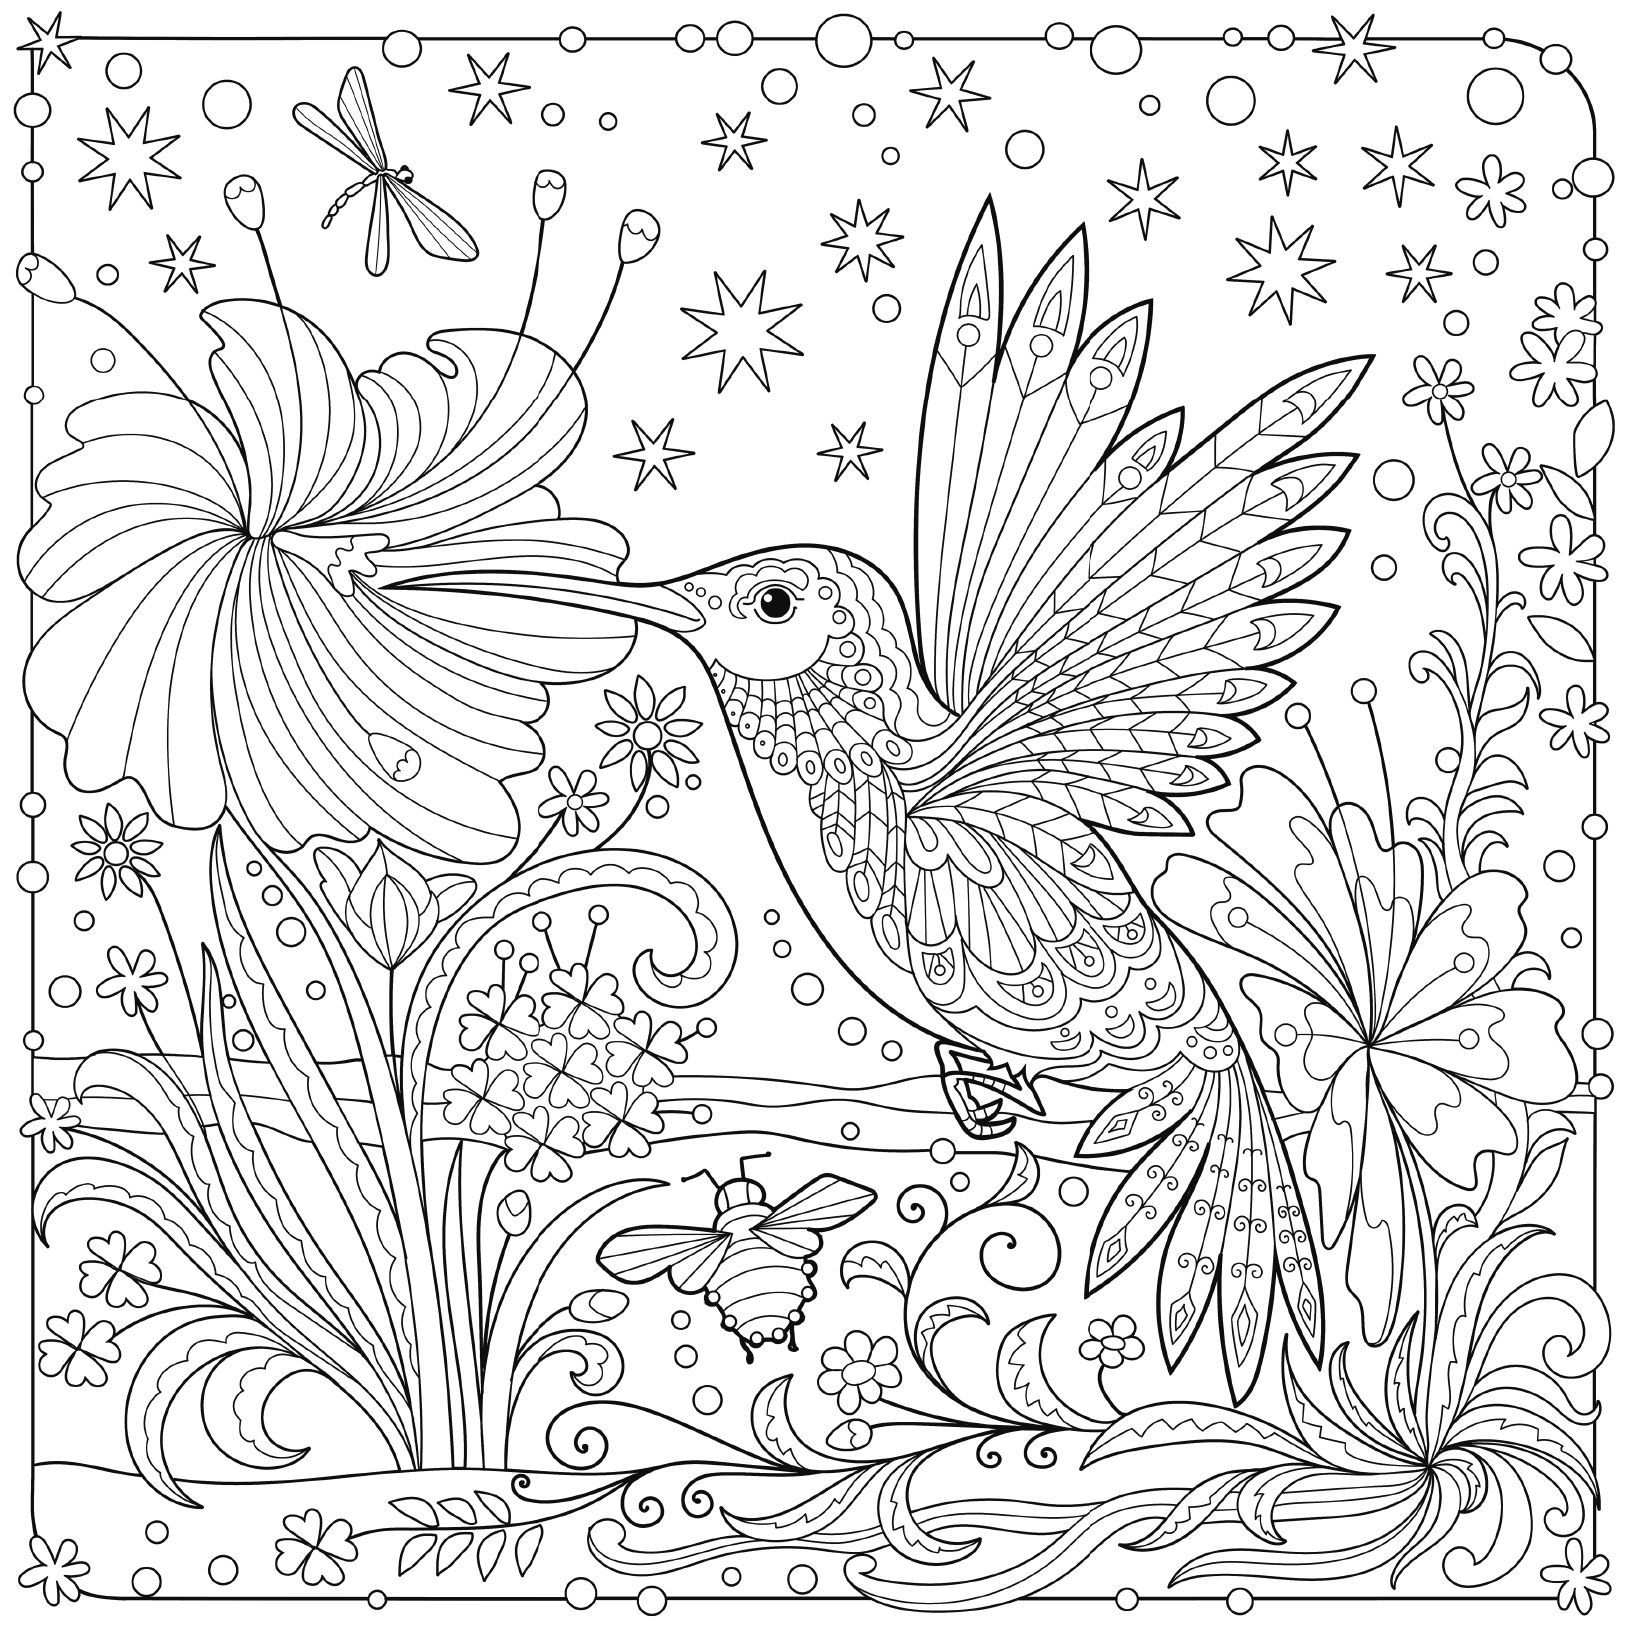 Hummingbird Colouring Page With Images Bird Coloring Pages